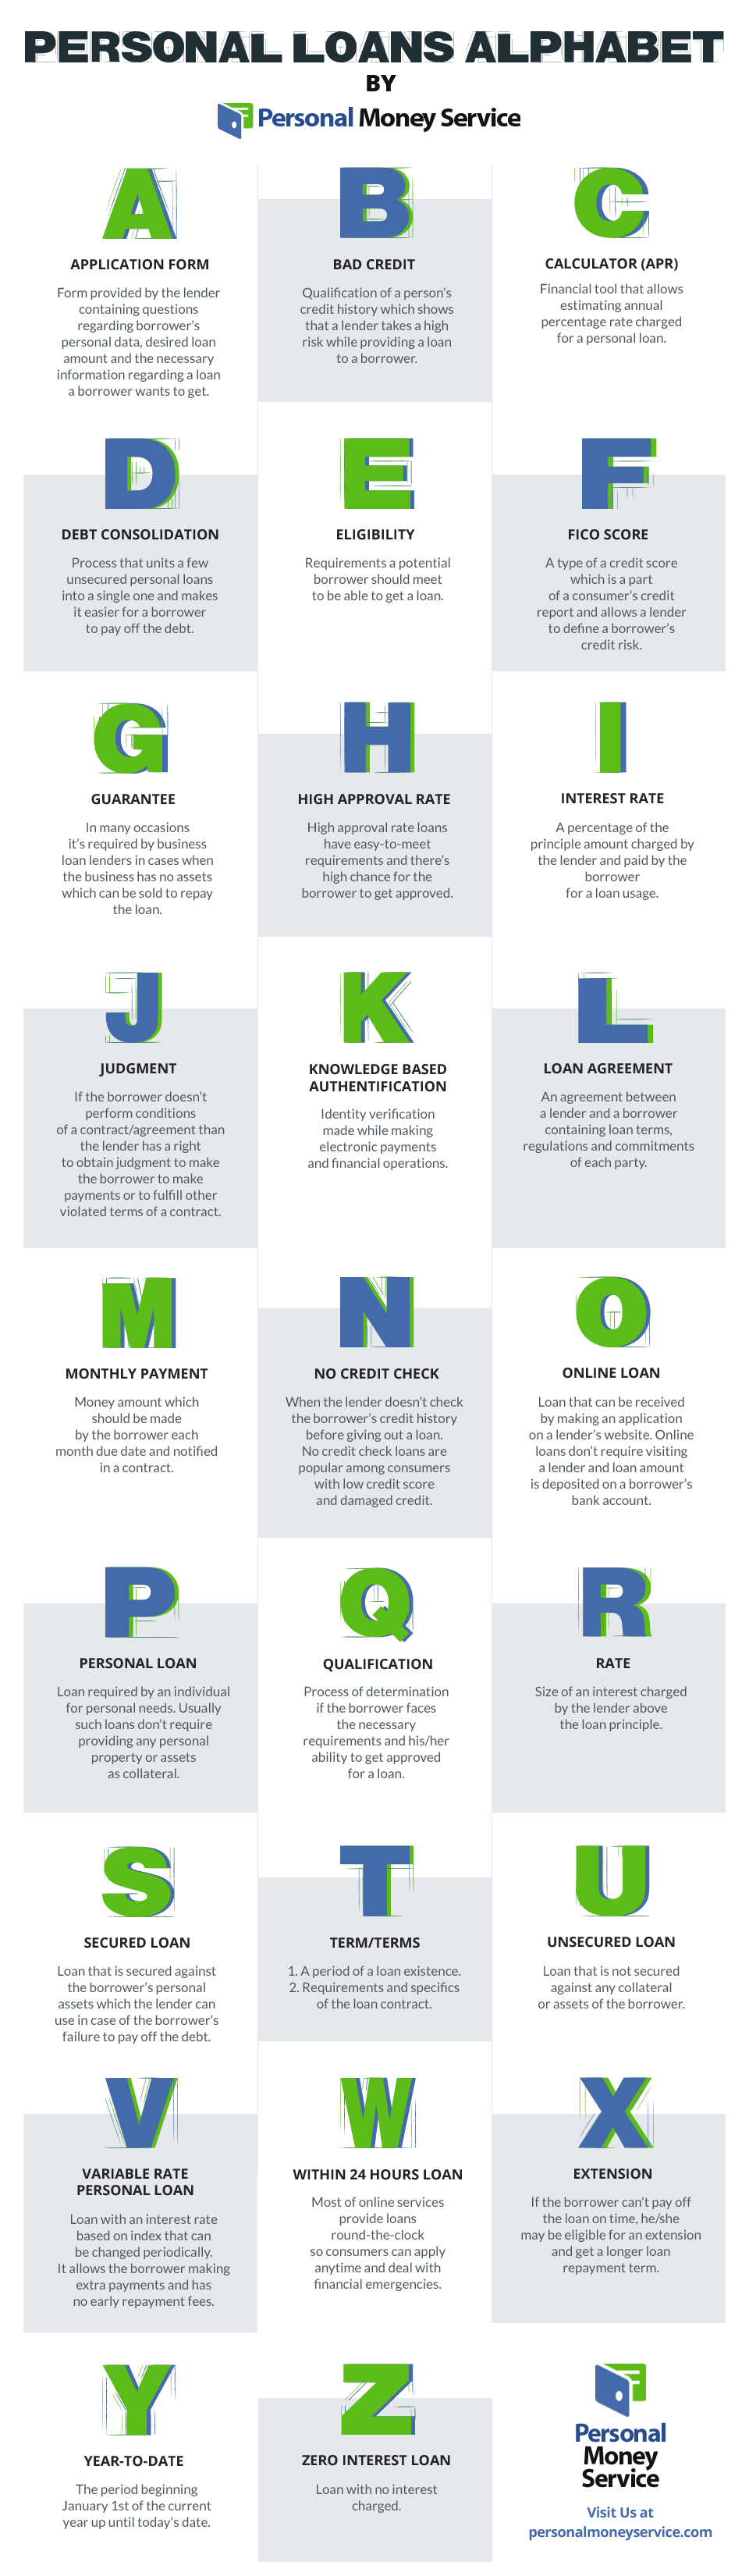 Personal Loans Alphabet - Financial Terms and Definitions